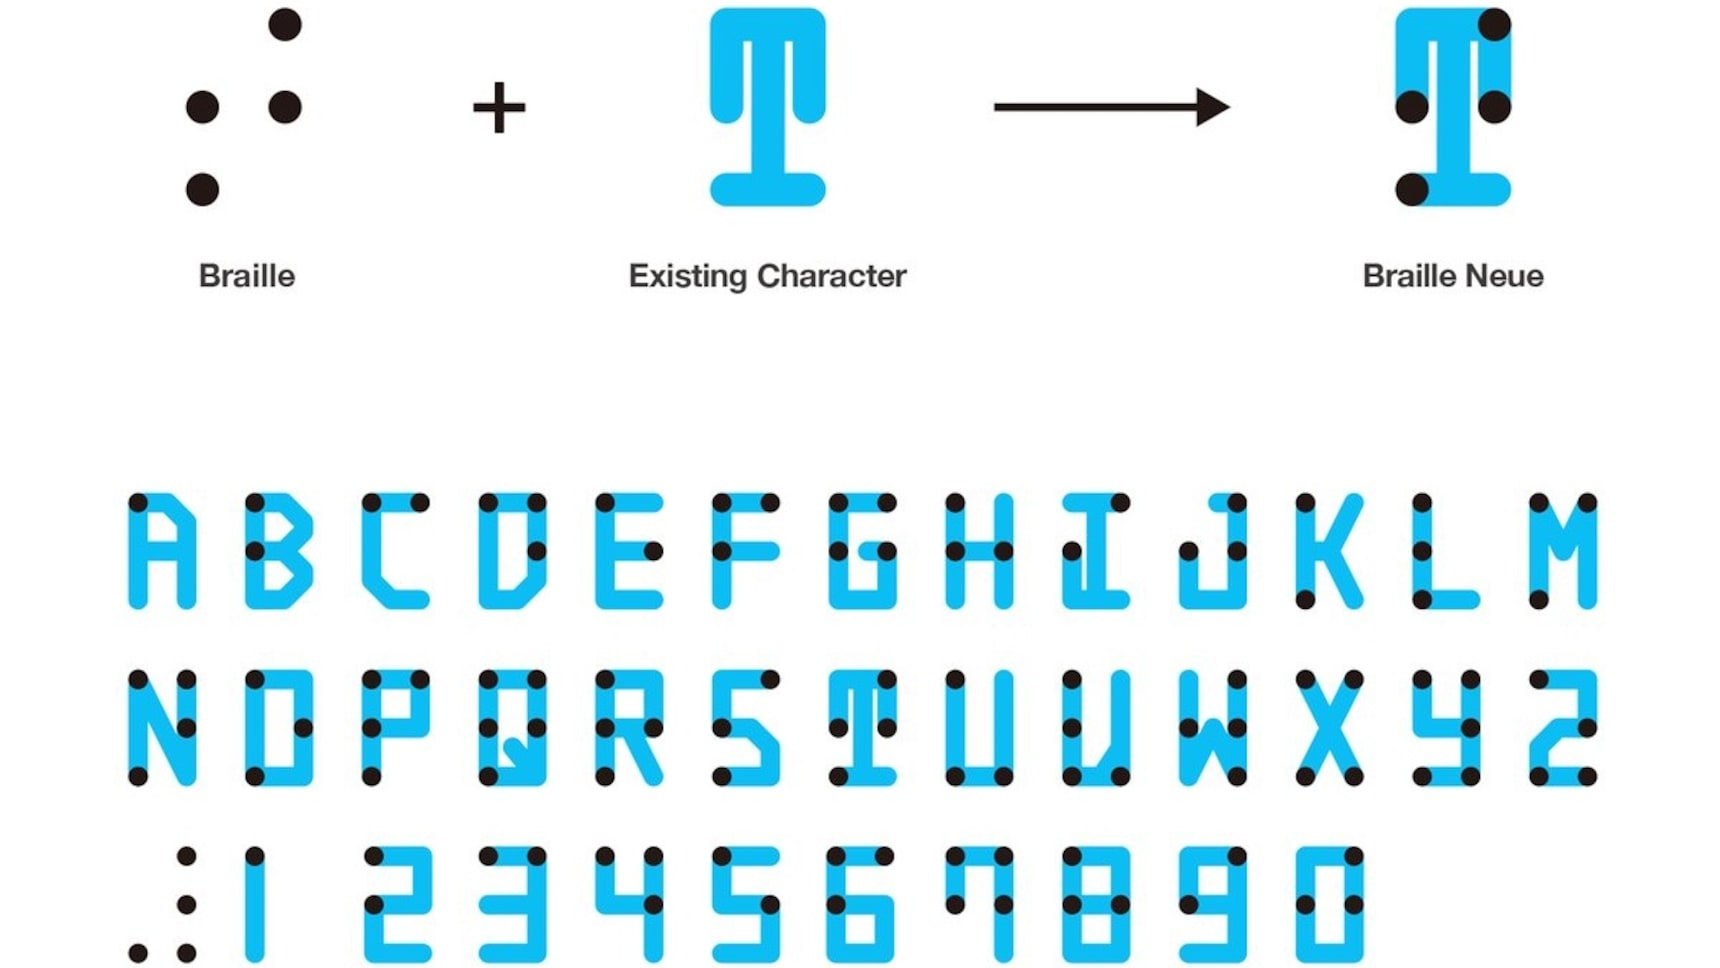 An Innovative 'Nueu' Braille Typeface